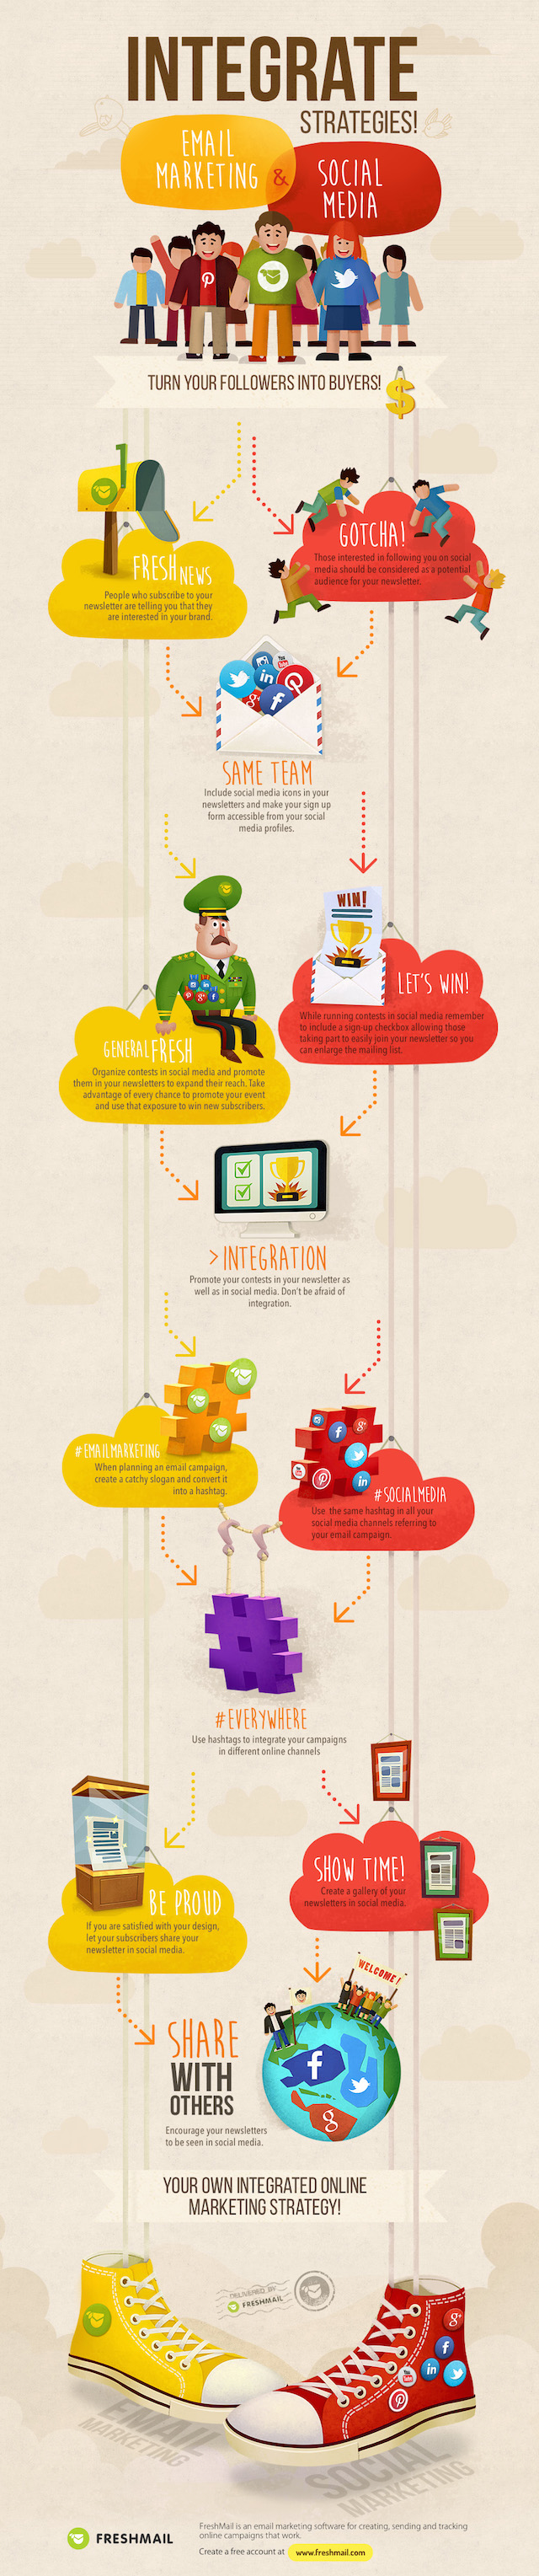 Social & EmailMarketing infographic